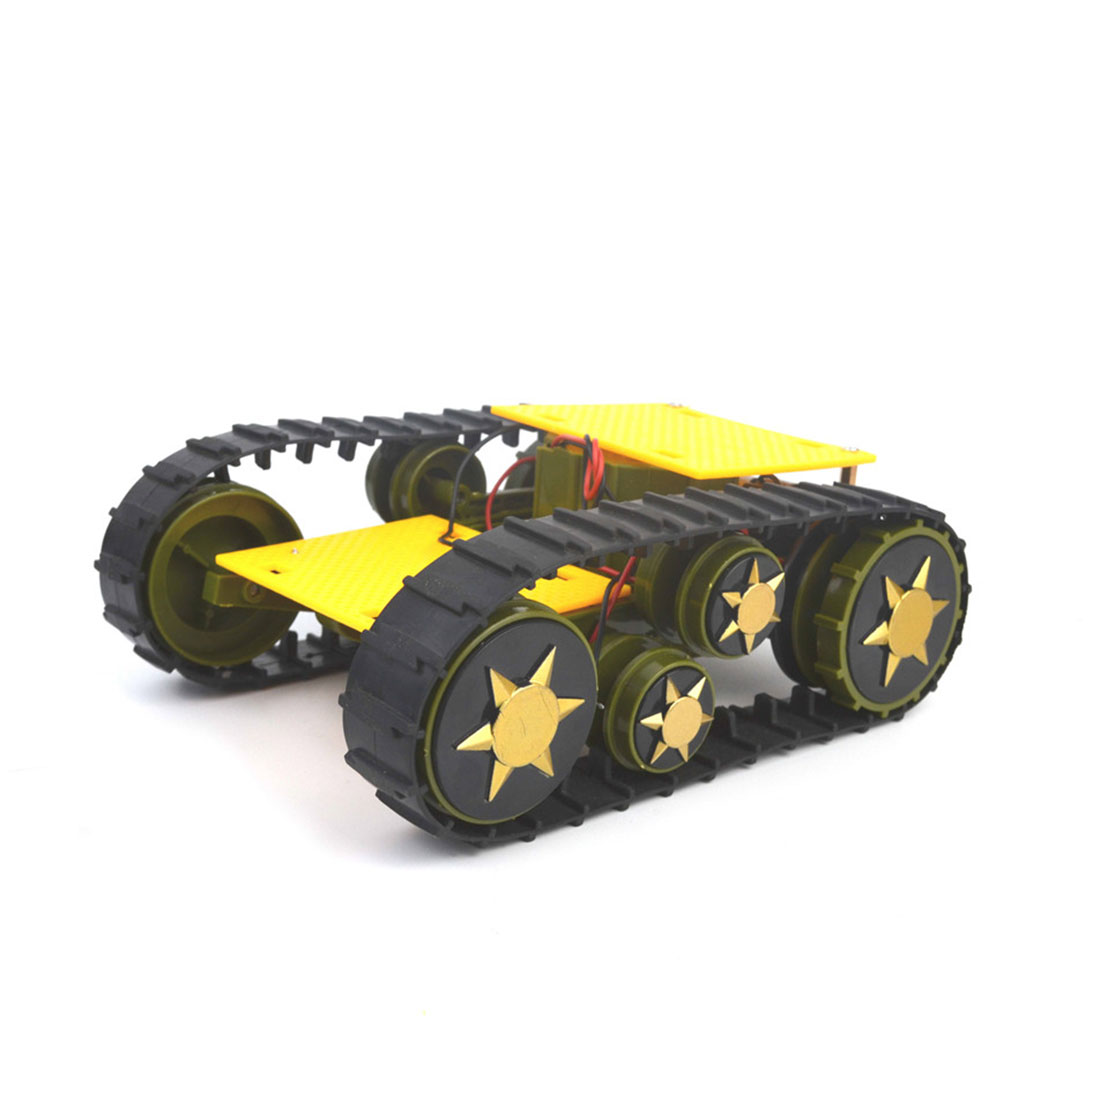 DIY Deformation Smart Intelligent Tank Robot Crawler Caterpillar Vehicle Platform For Arduino SN1900 Learning Educational Toy